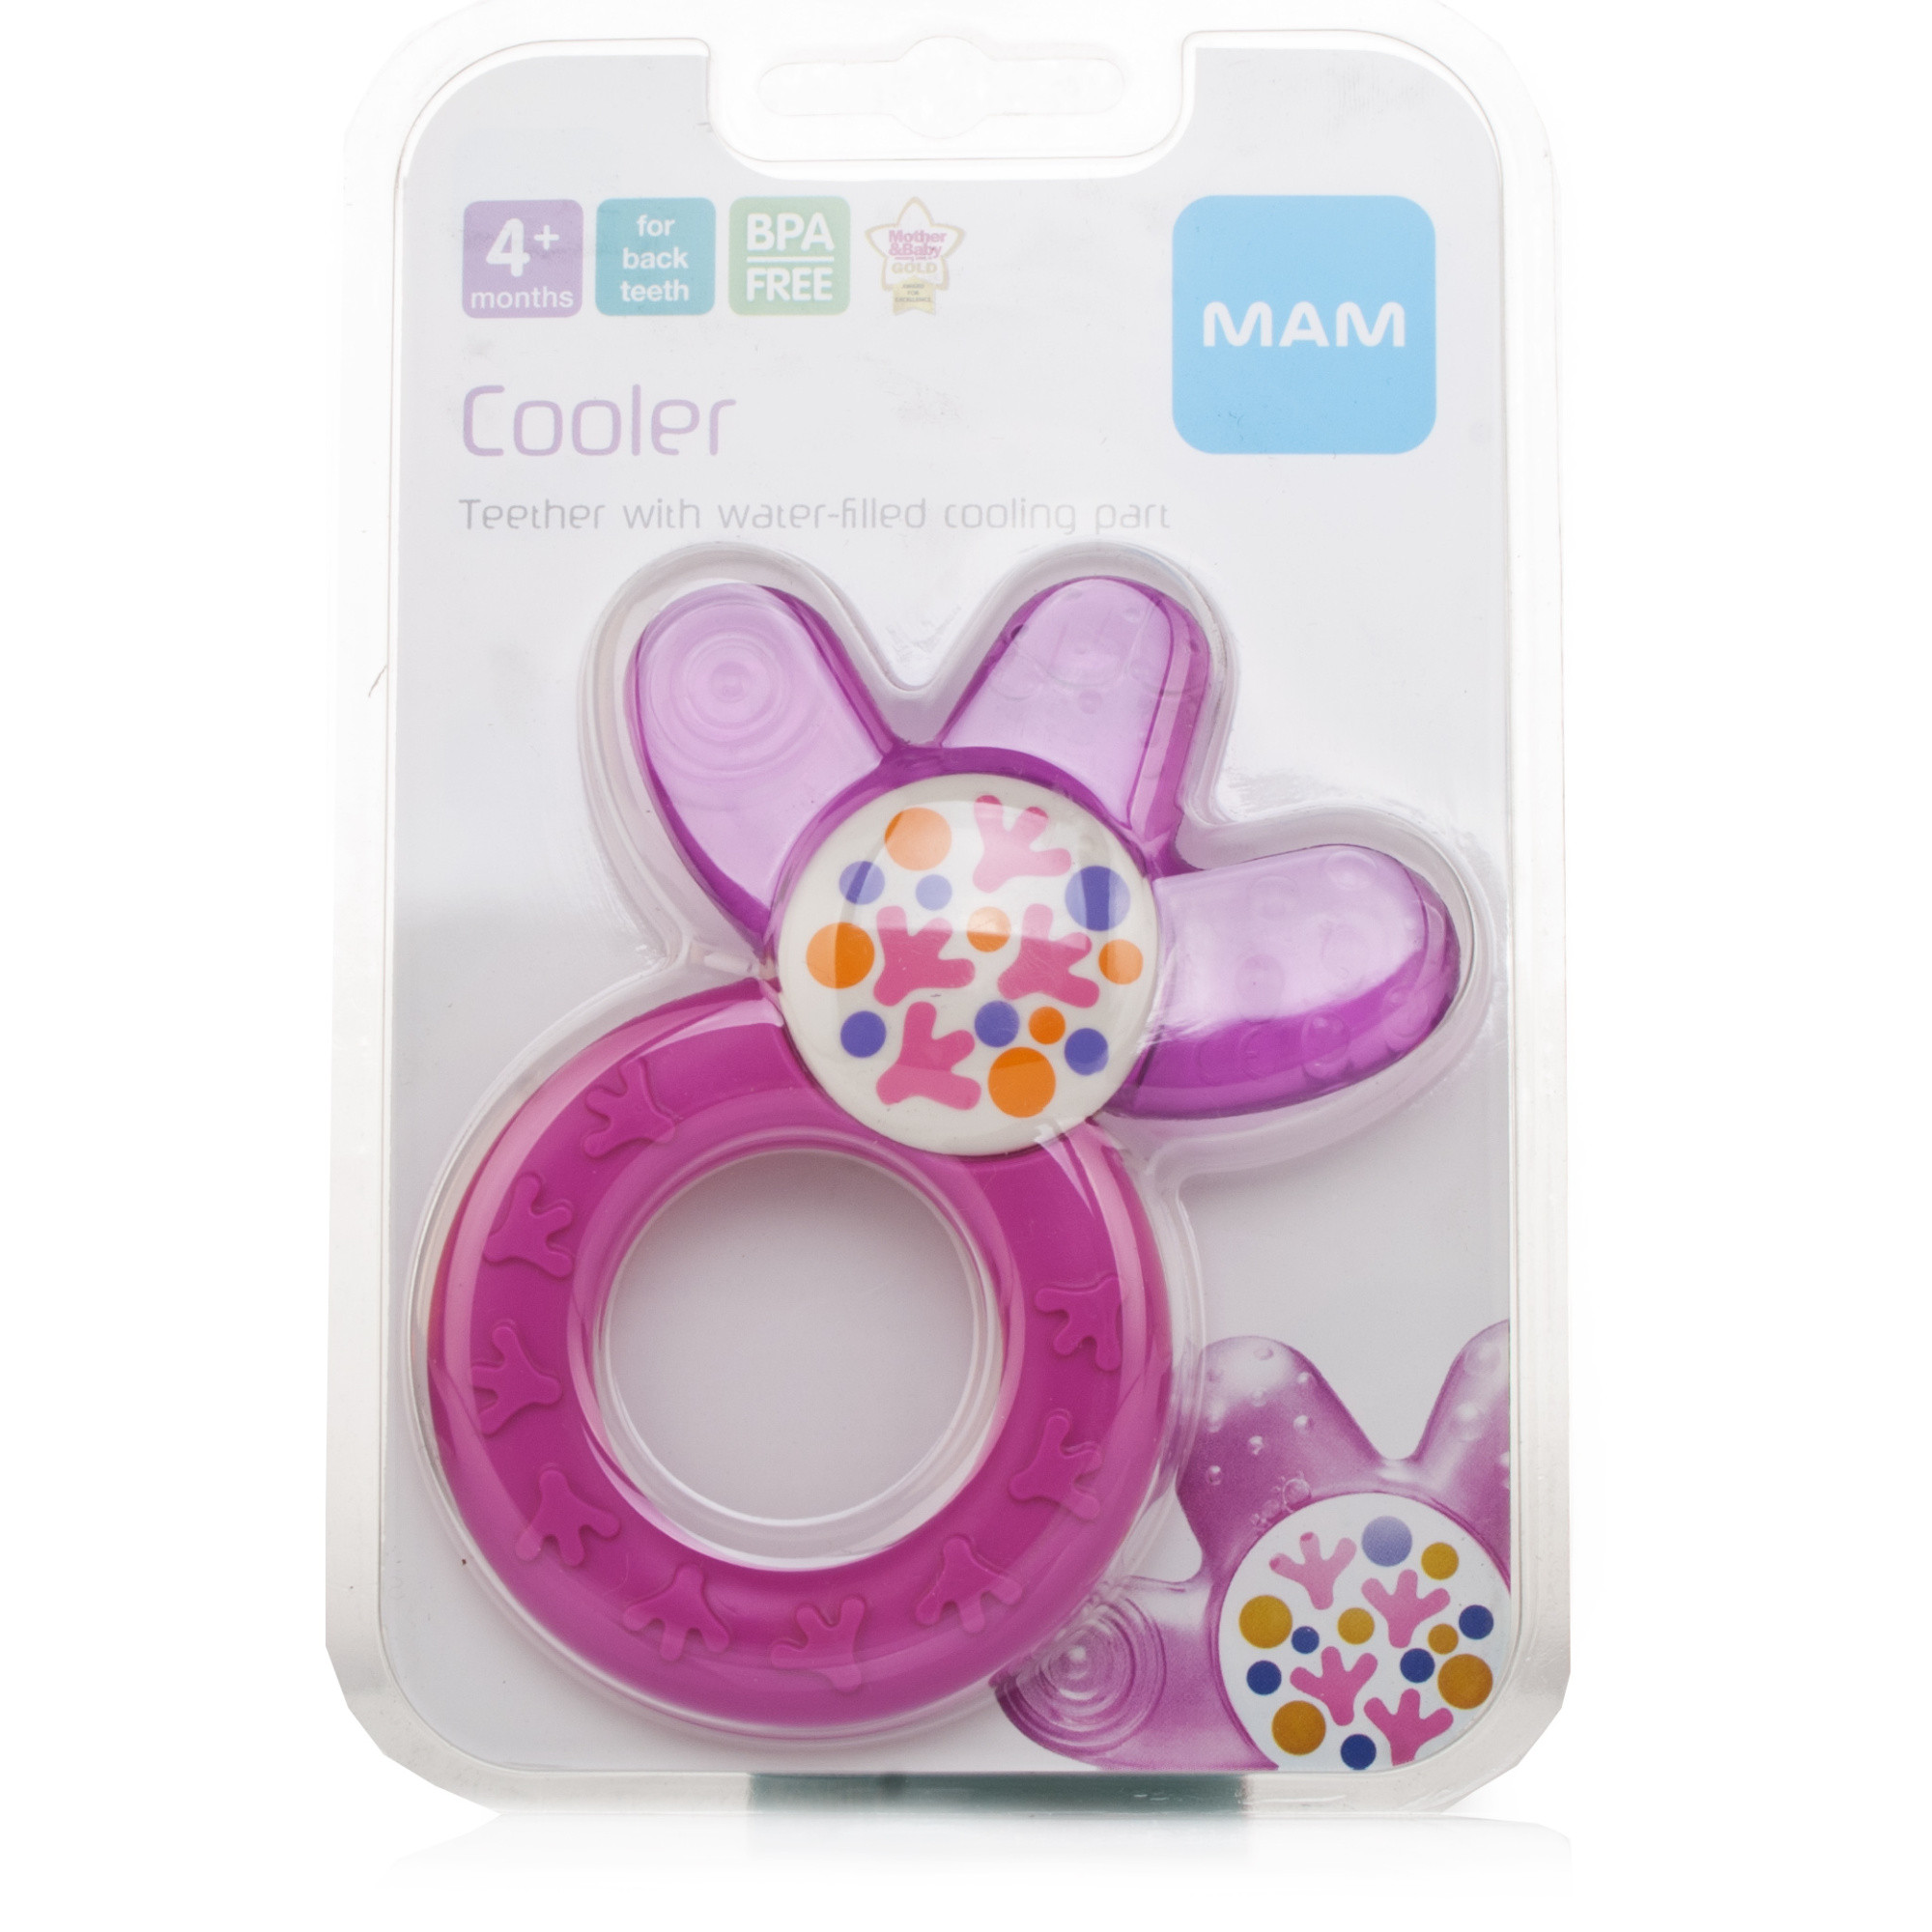 MAM Cooler Teether Pink